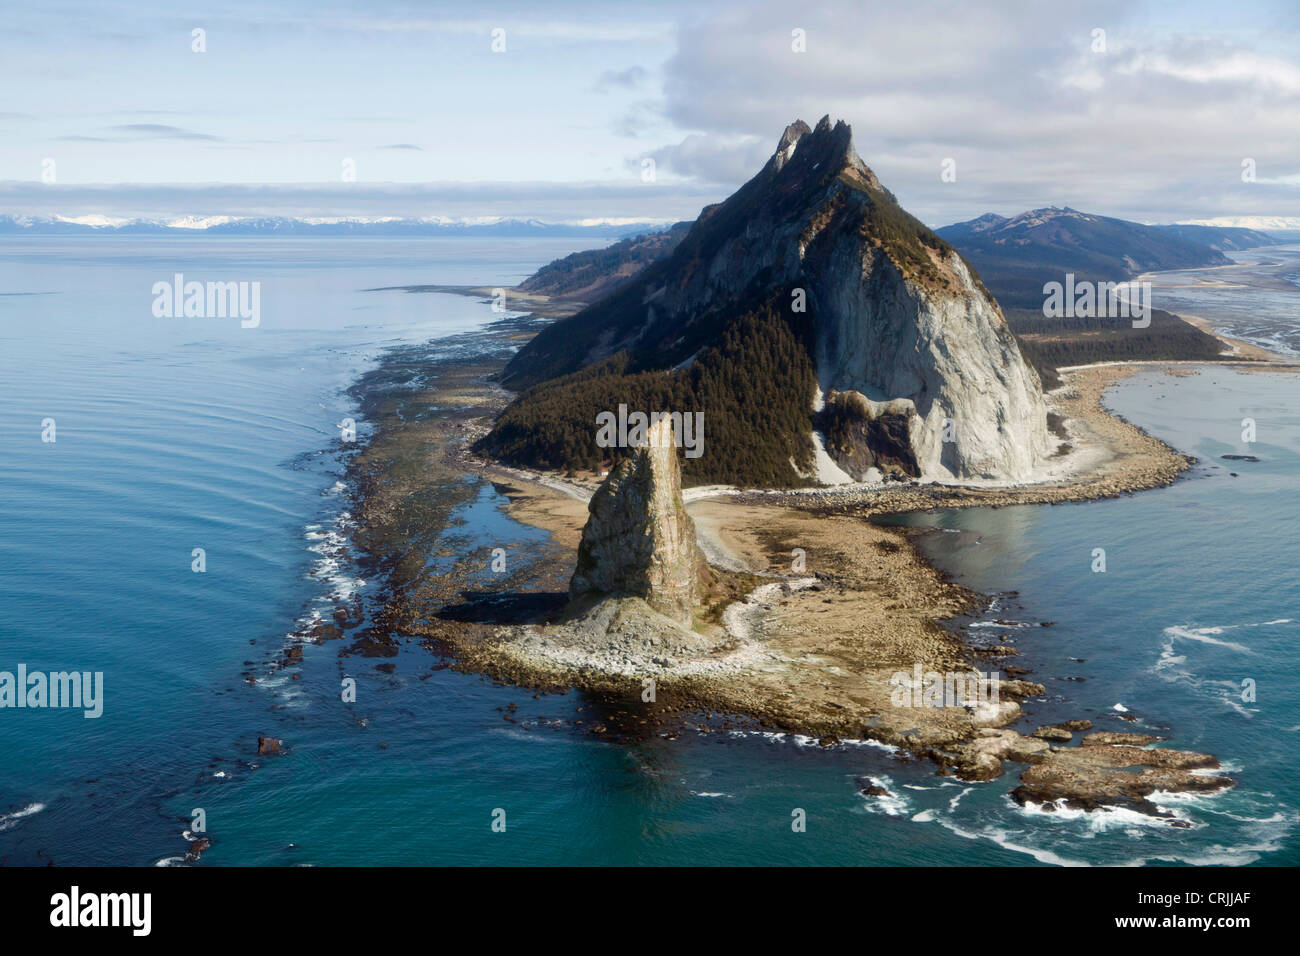 Gulf of Alaska, the lighthouse and rock pinnacle at Cape St  Elias